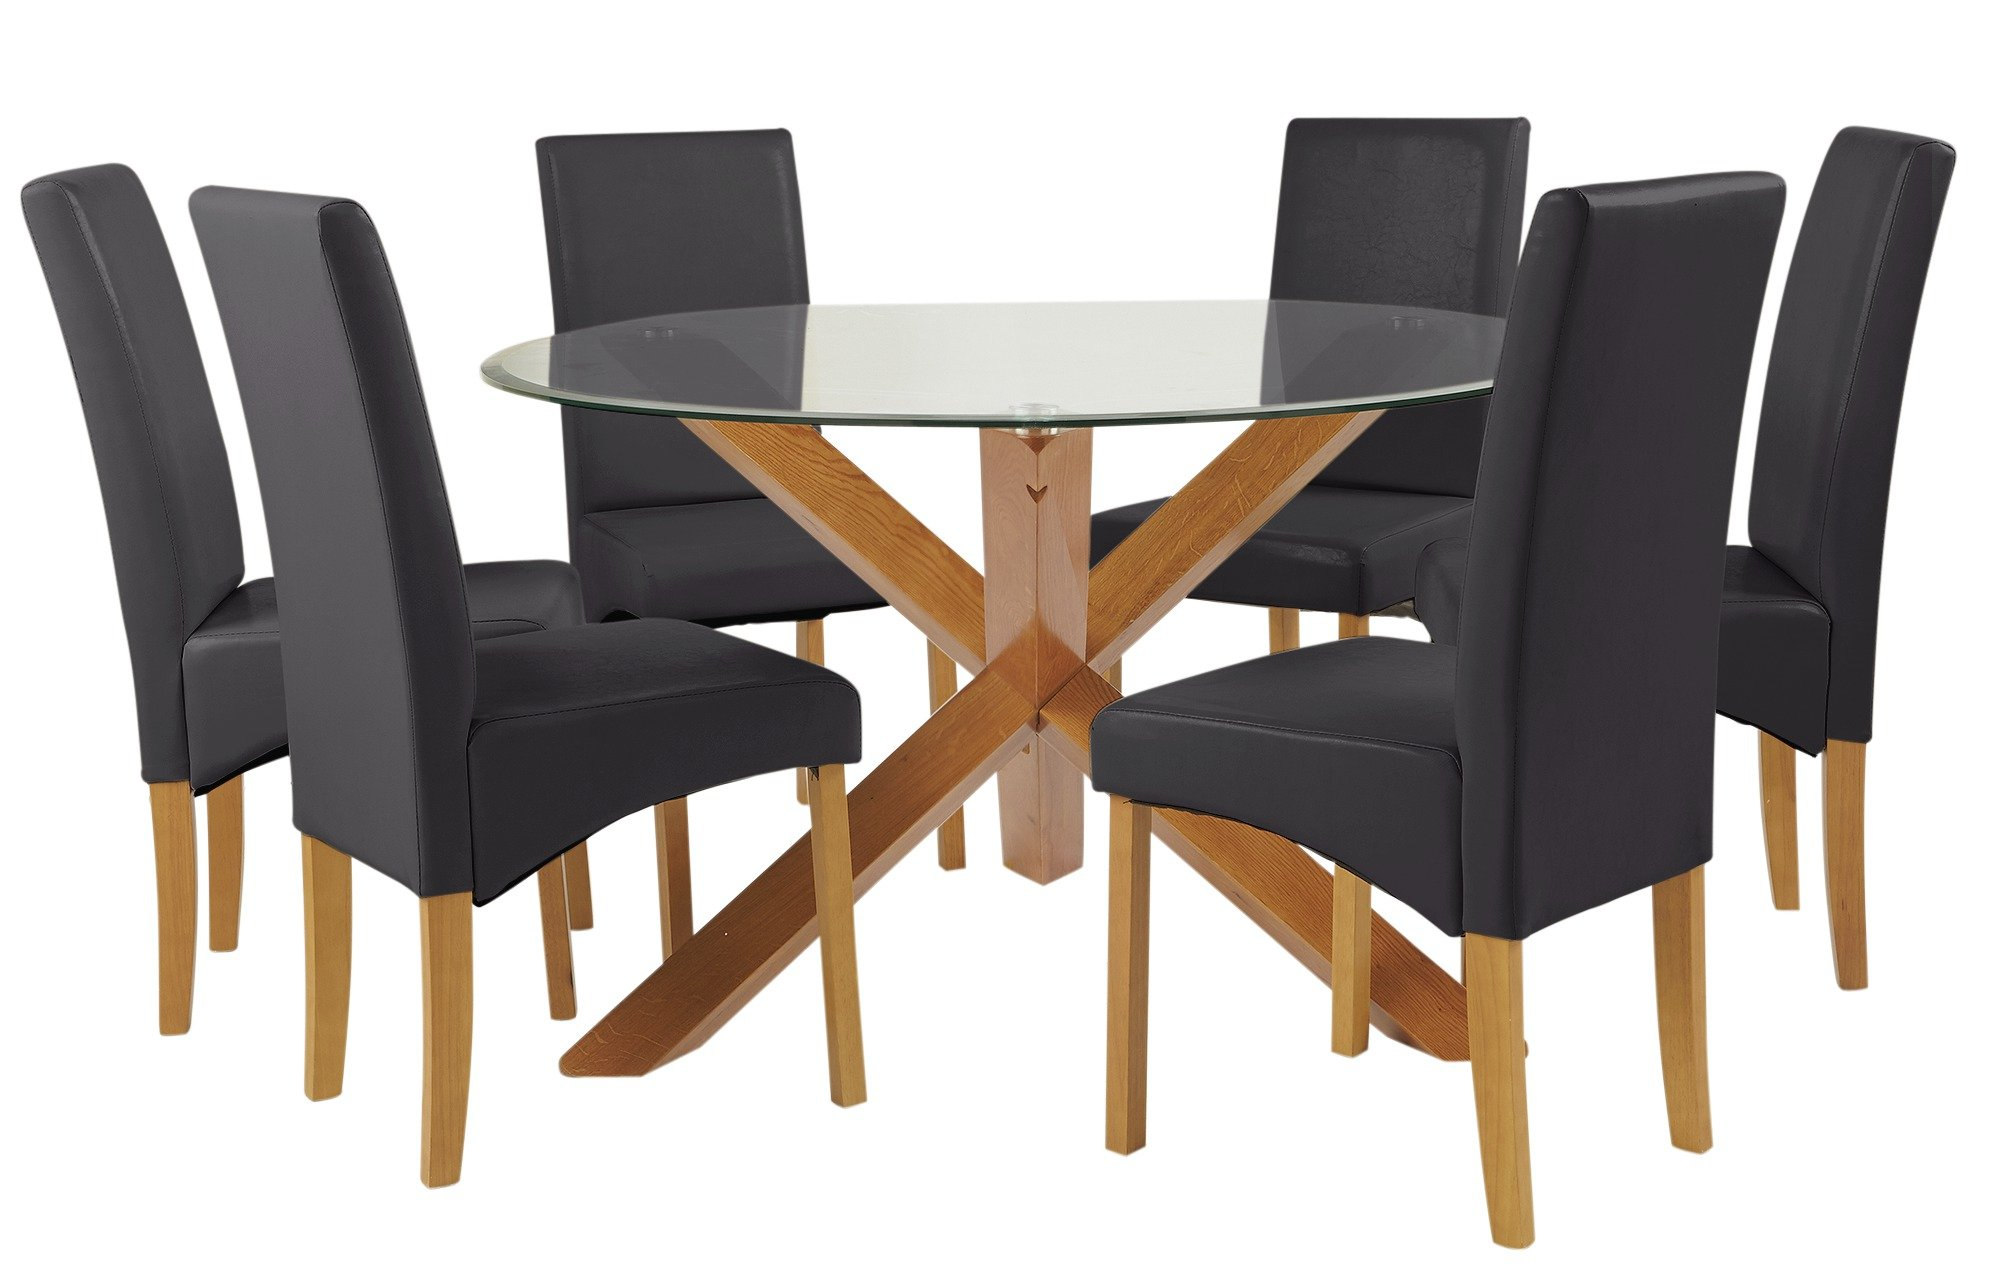 Image of Heart of House Oakington Round Glass Table & 6Chairs - Black